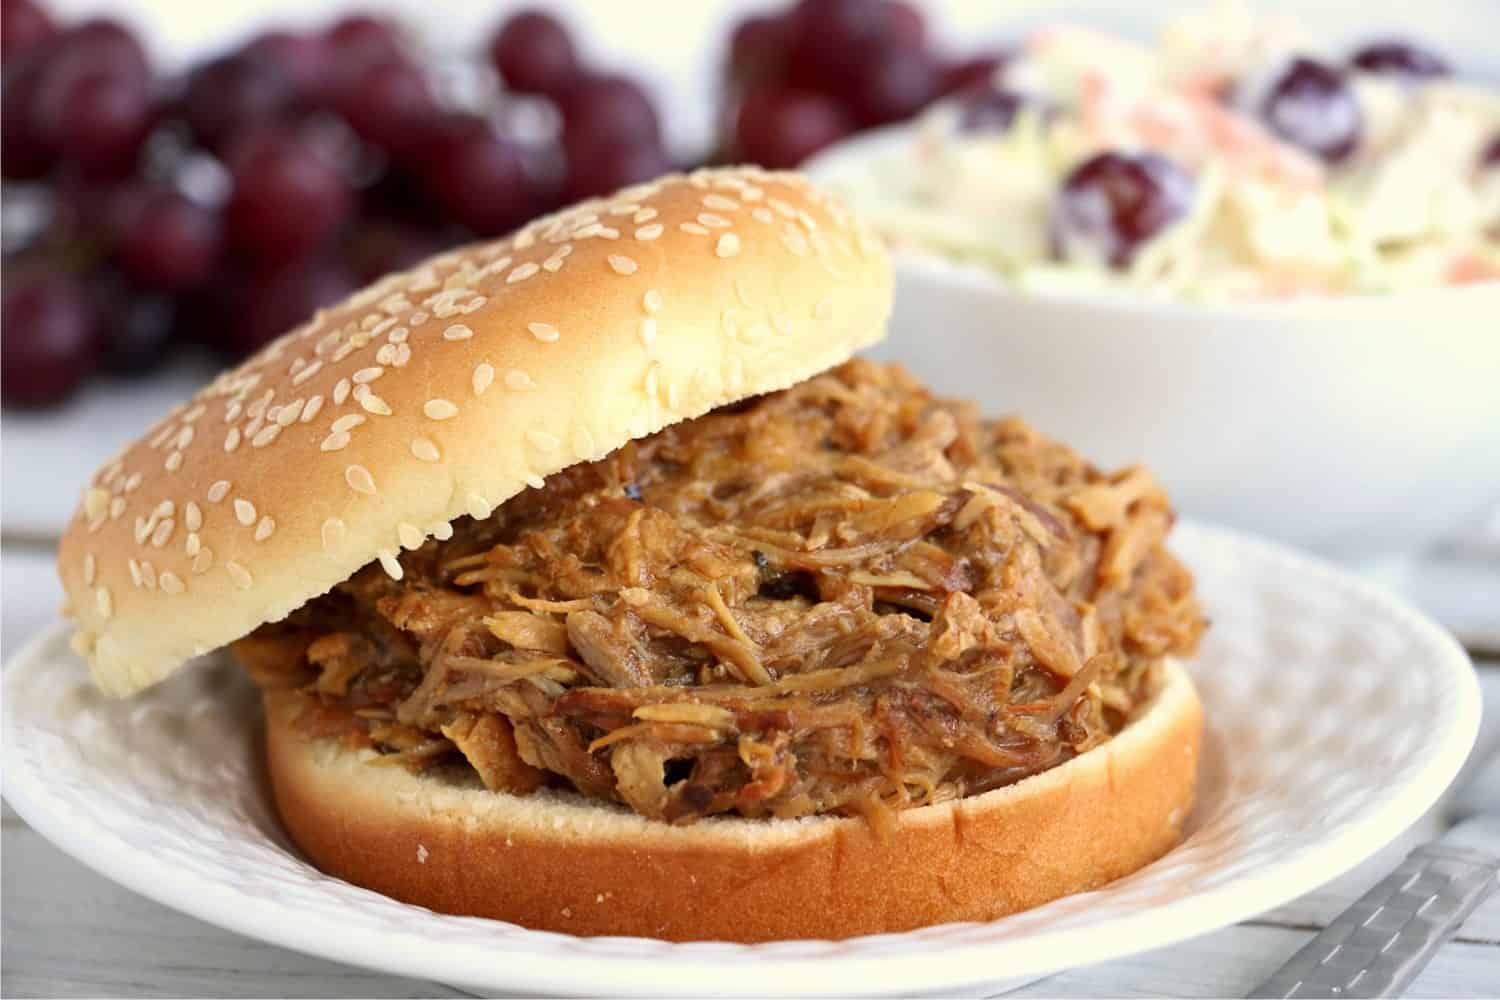 A delicious-looking hamburger bun with pulled pork made in a slow cooker on a plate